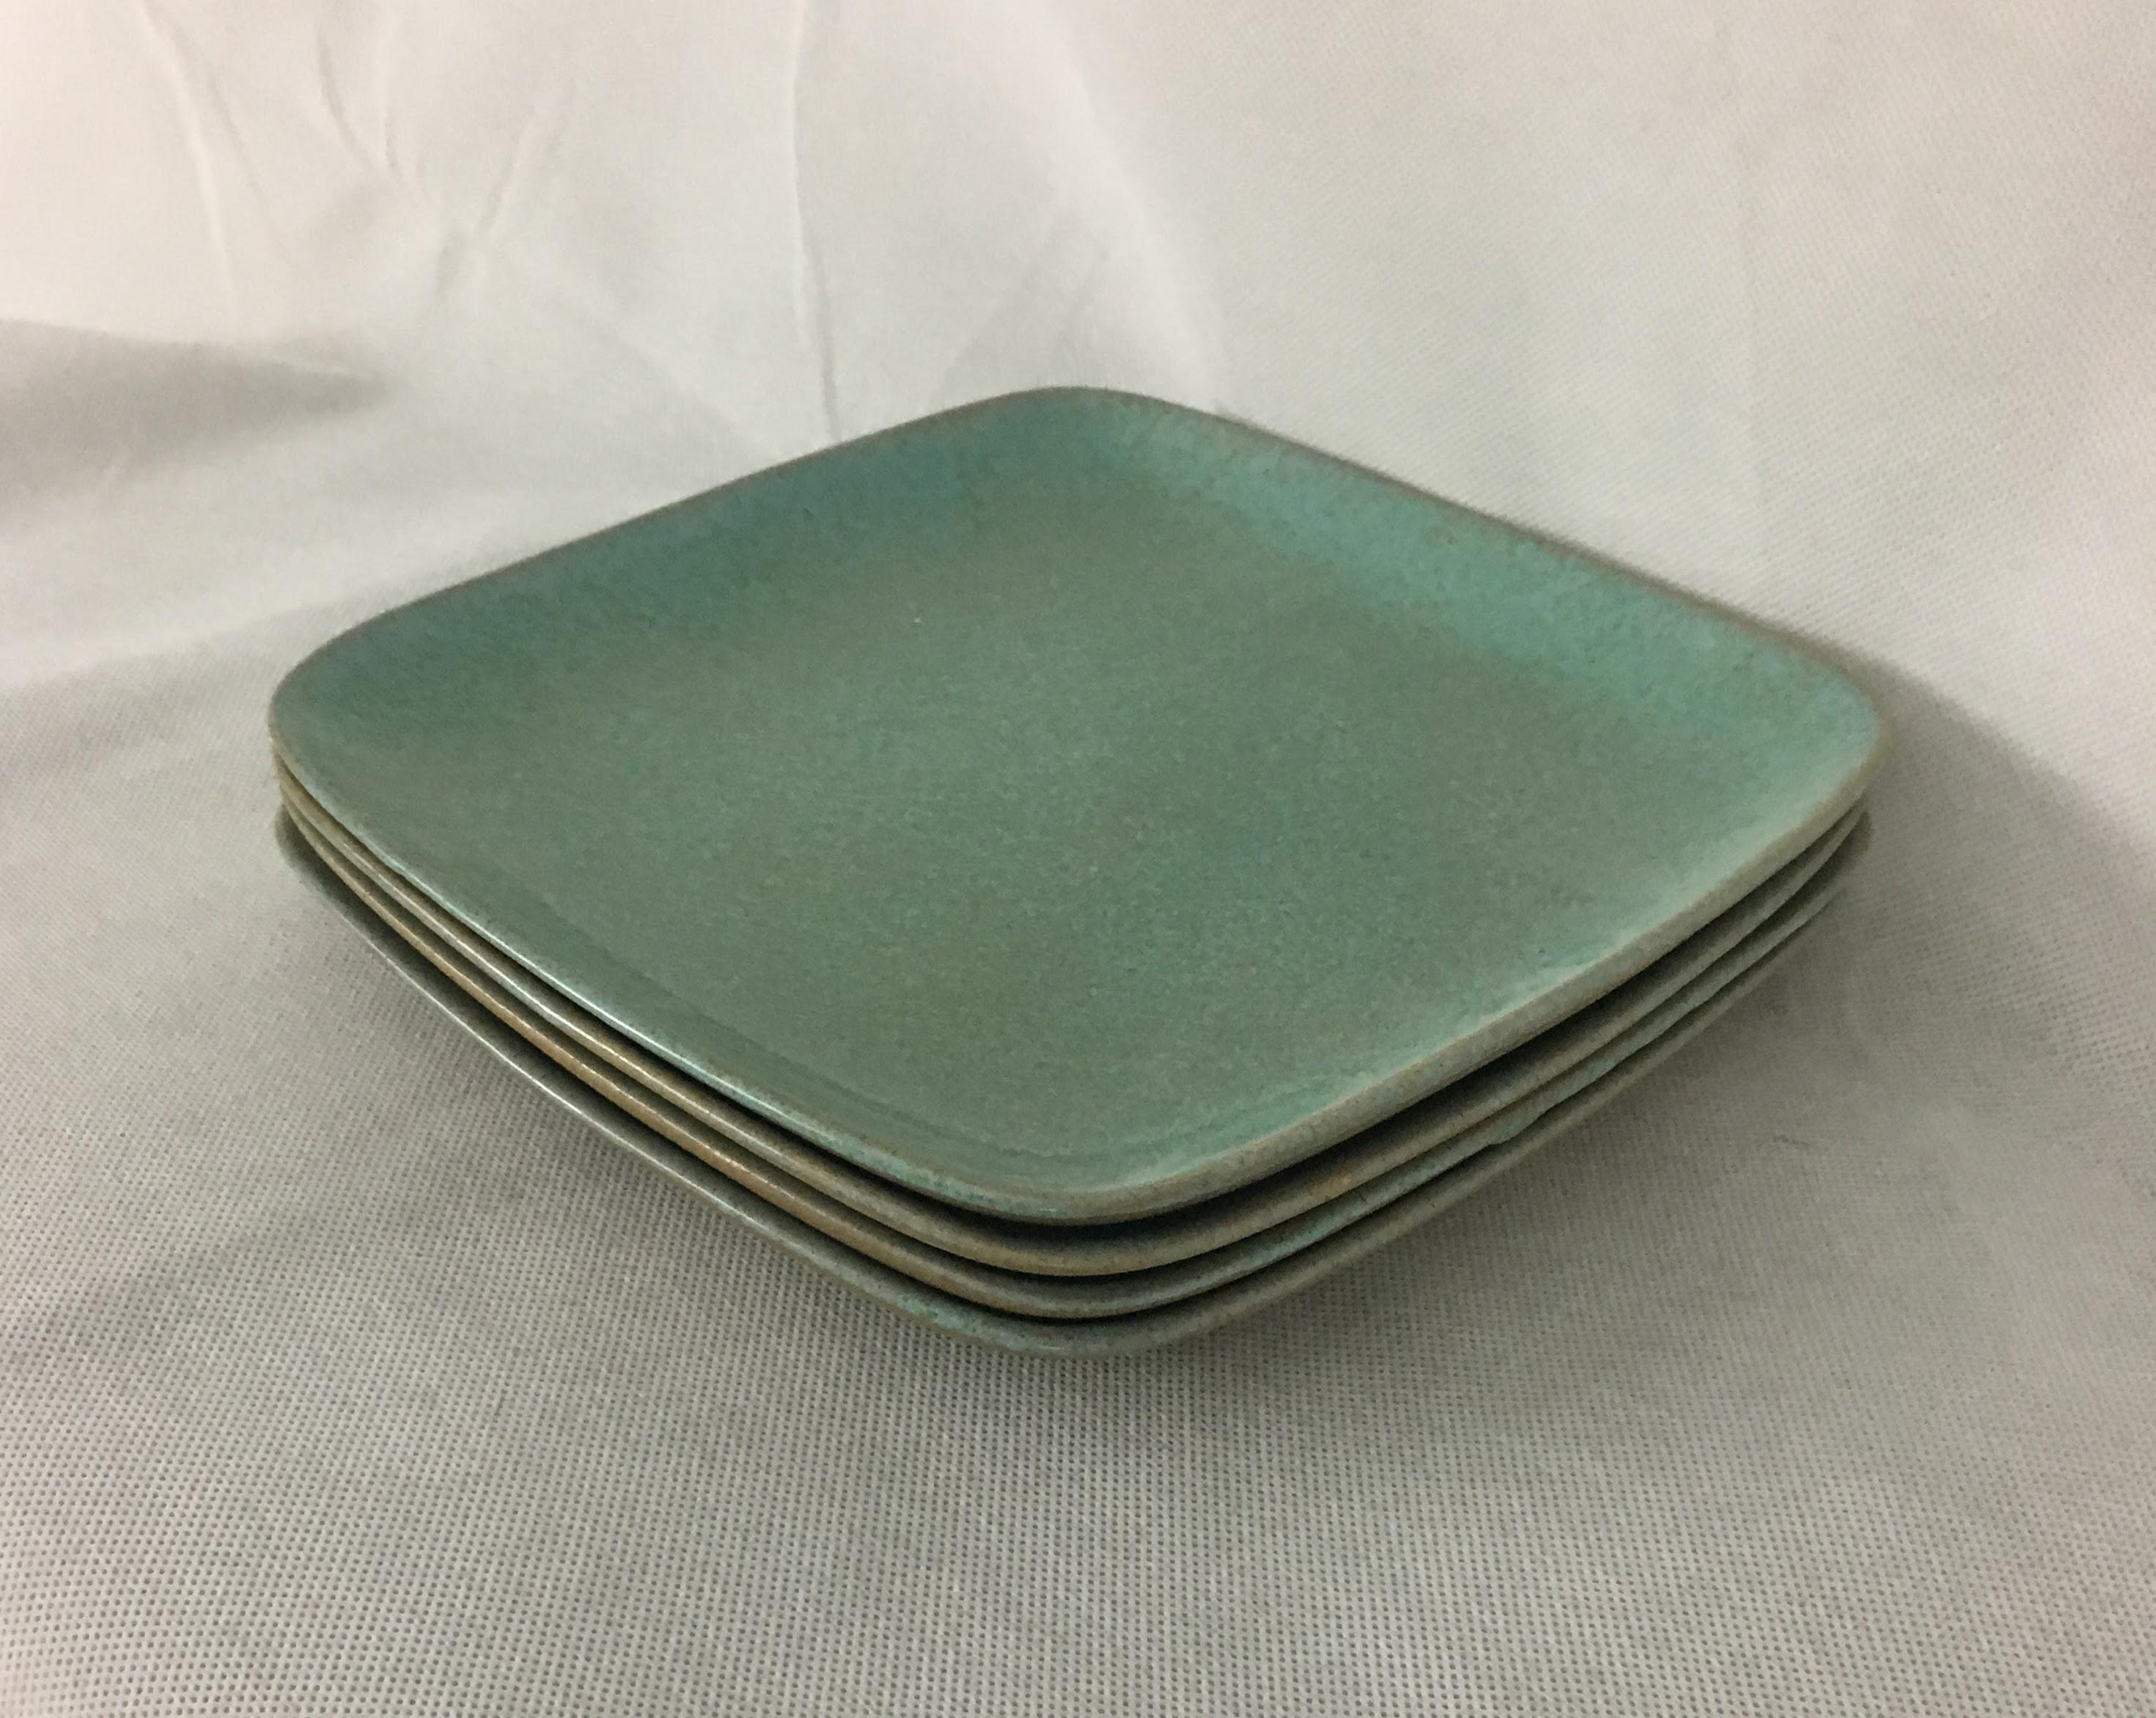 Glidden Matrix Turquoise Small Dinner Plates - Set of 4 - Image 5 of 5  sc 1 st  Chairish & Glidden Matrix Turquoise Small Dinner Plates - Set of 4 | Chairish